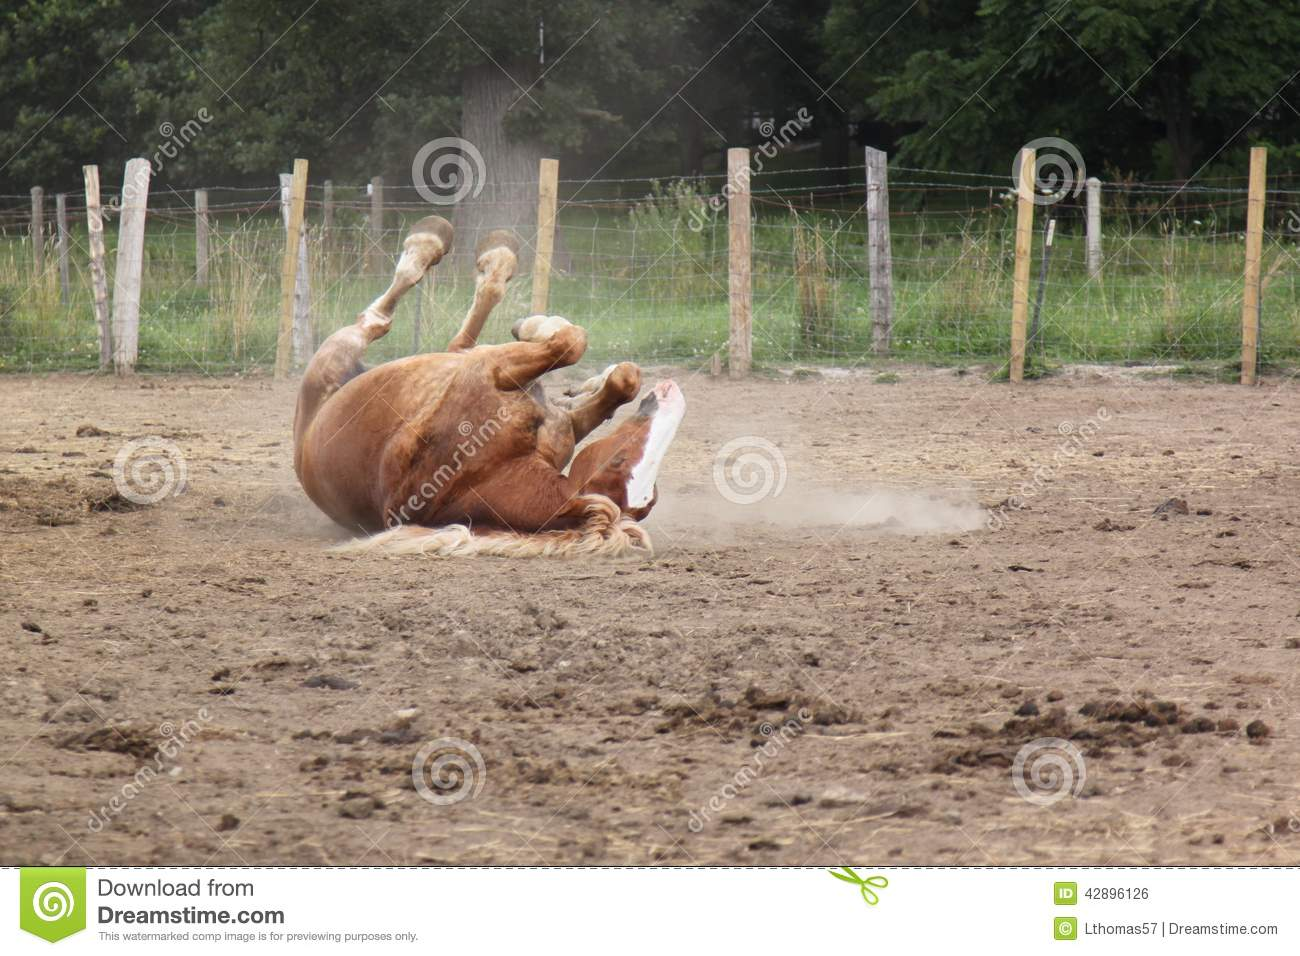 Rolling in the dirt stock photo  Image of dust, equine